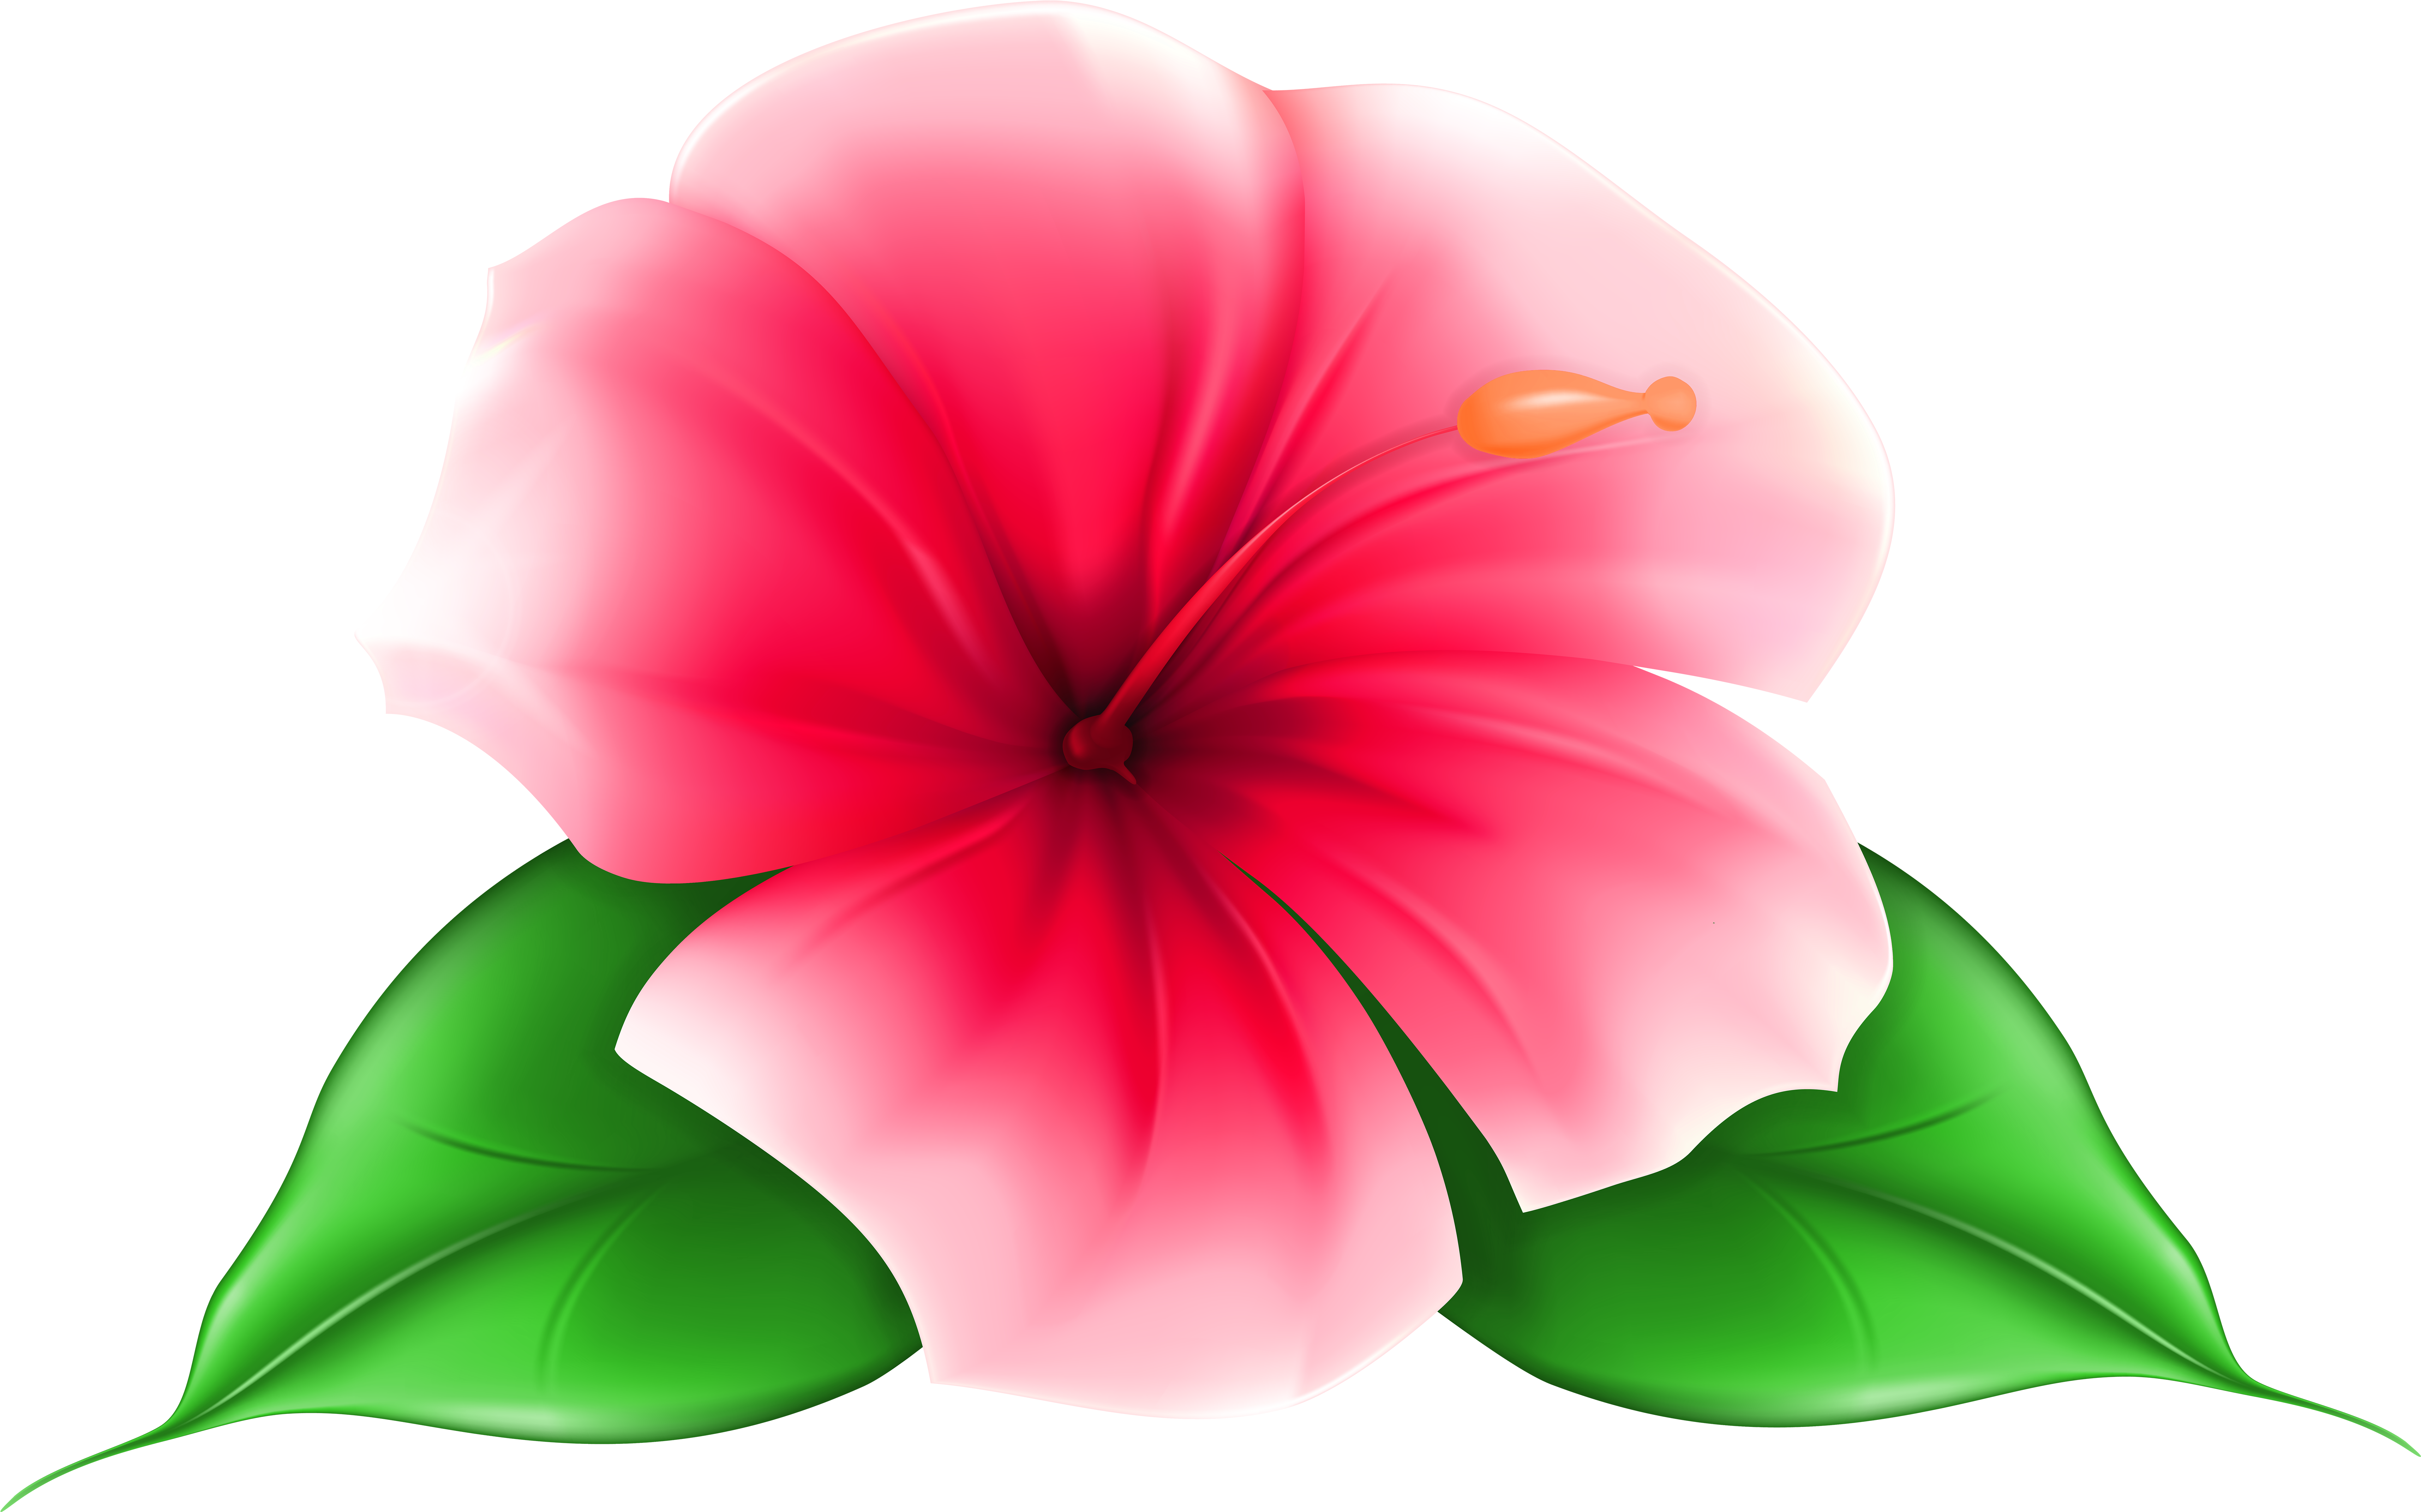 HD Exotic Flower Png Clip Art Image.